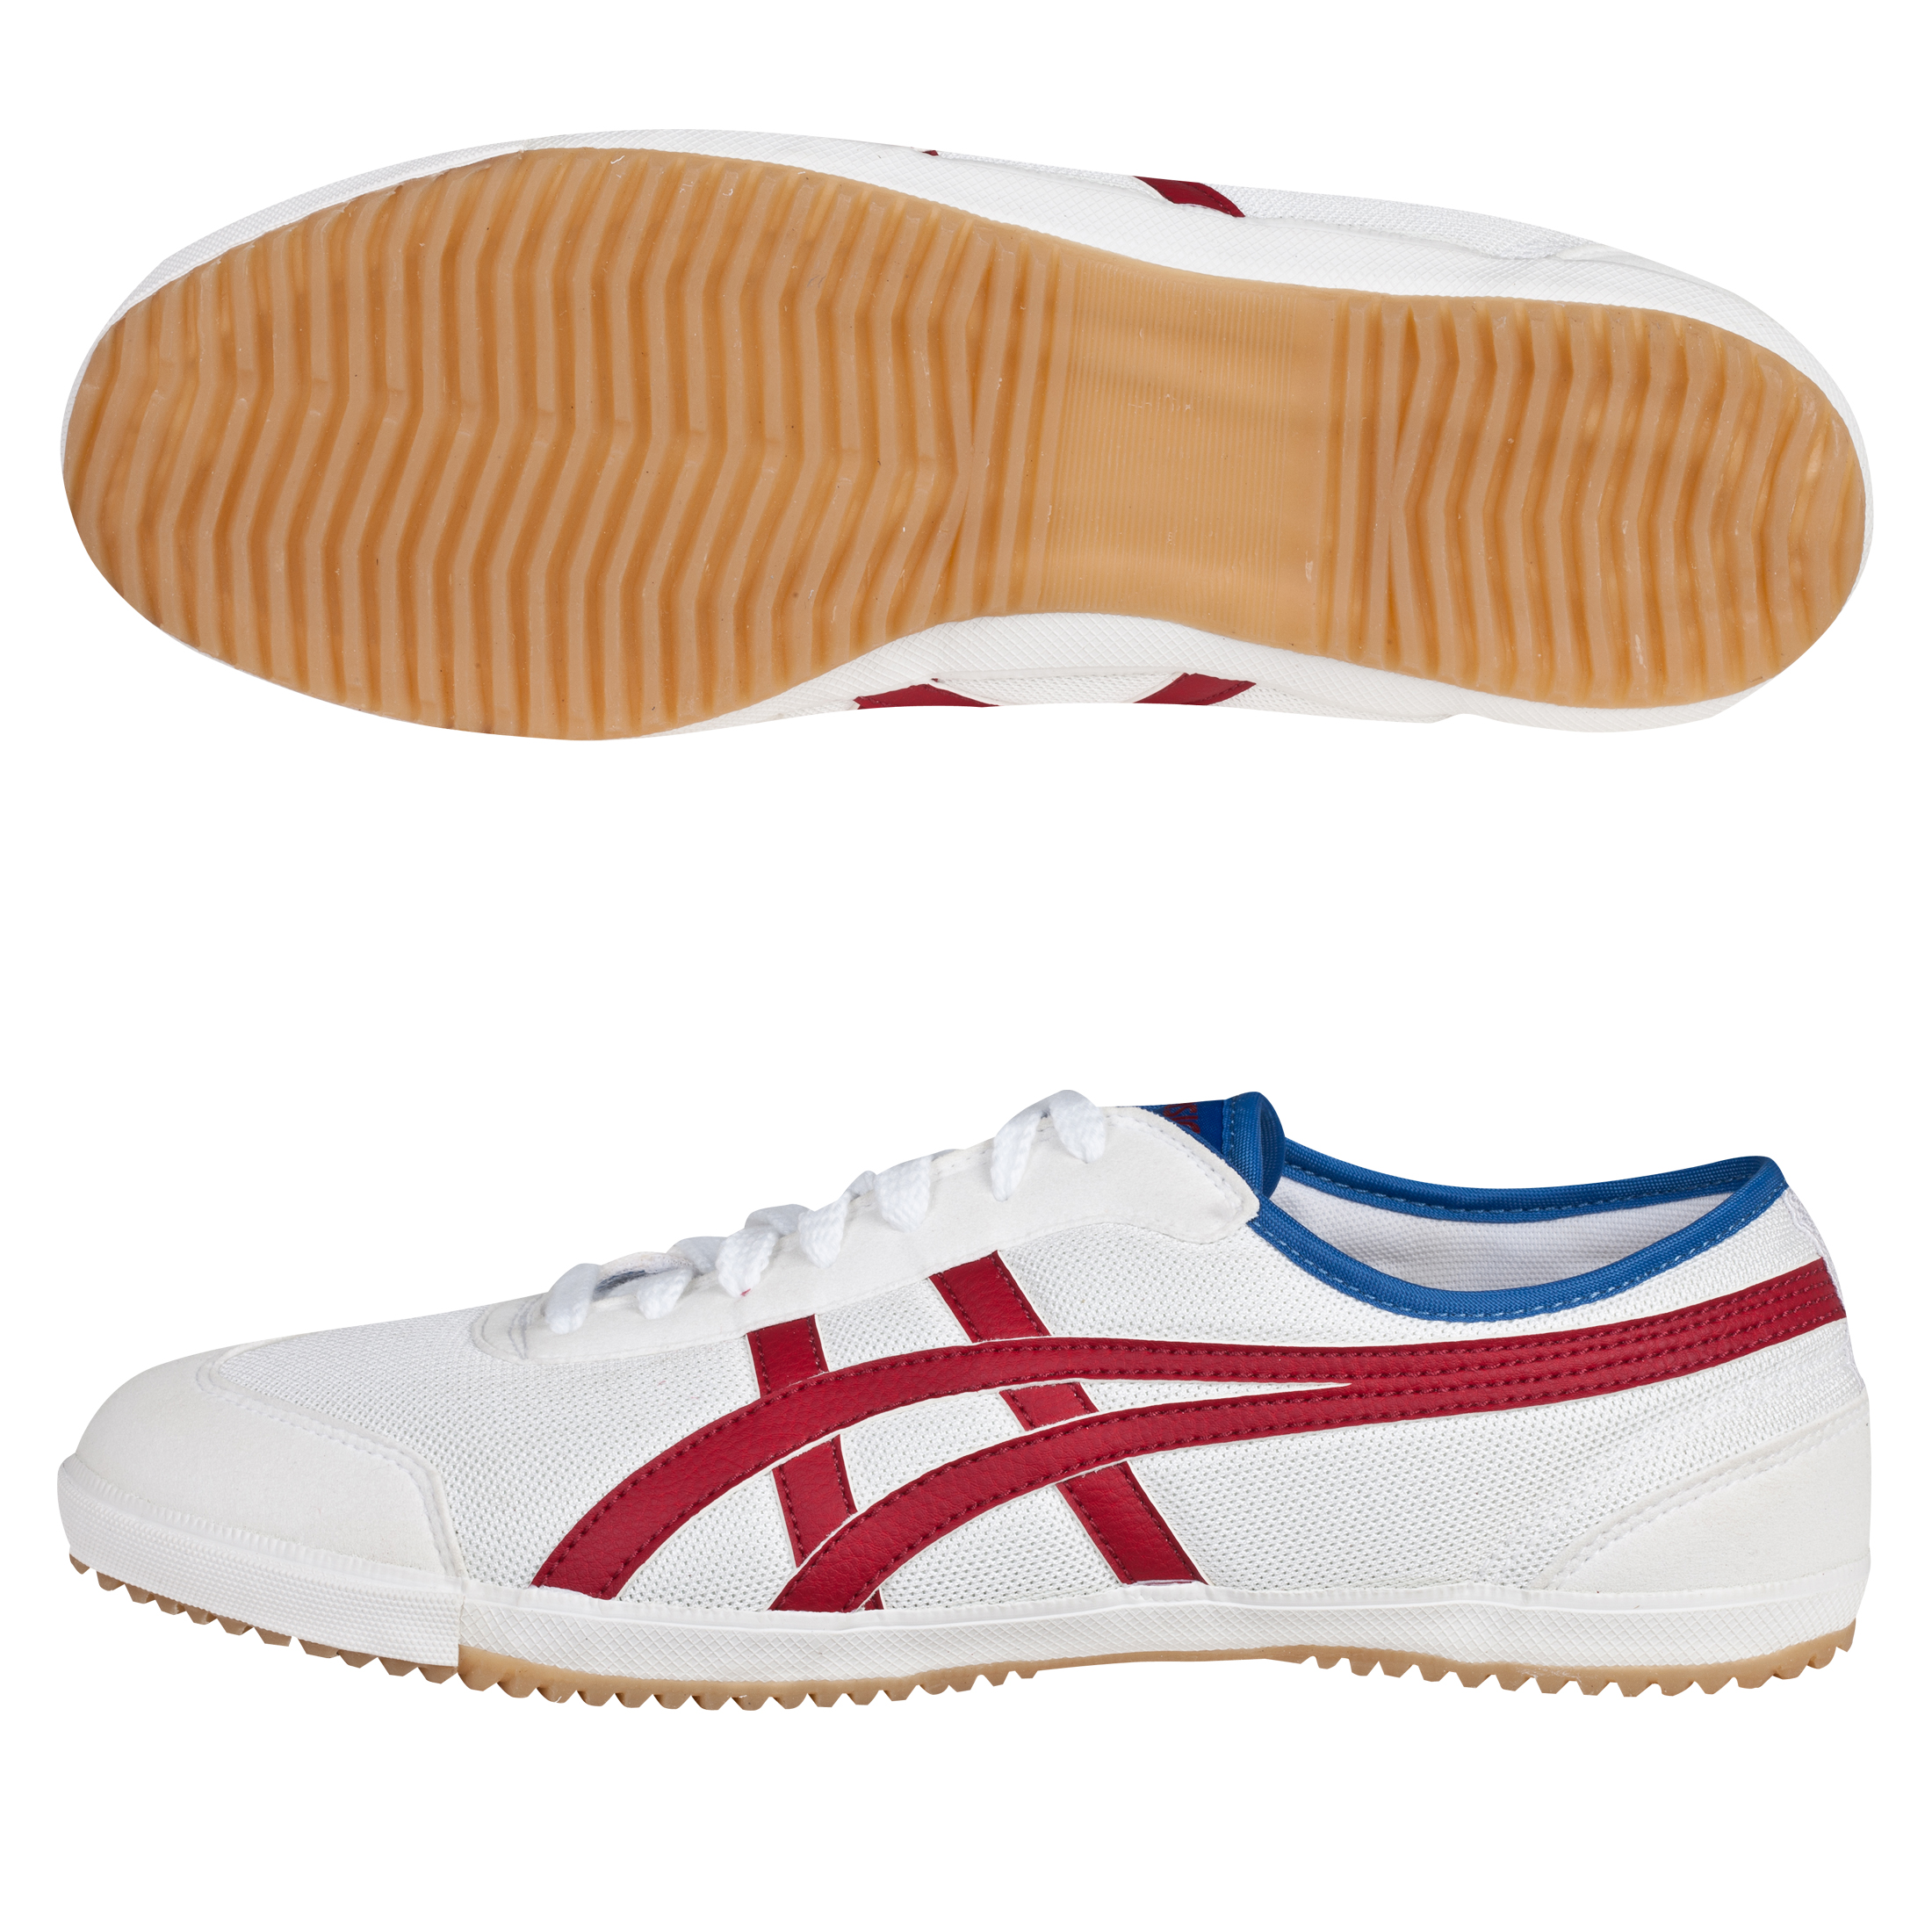 Asics Retro Rocket Trainers - White/Burgundy